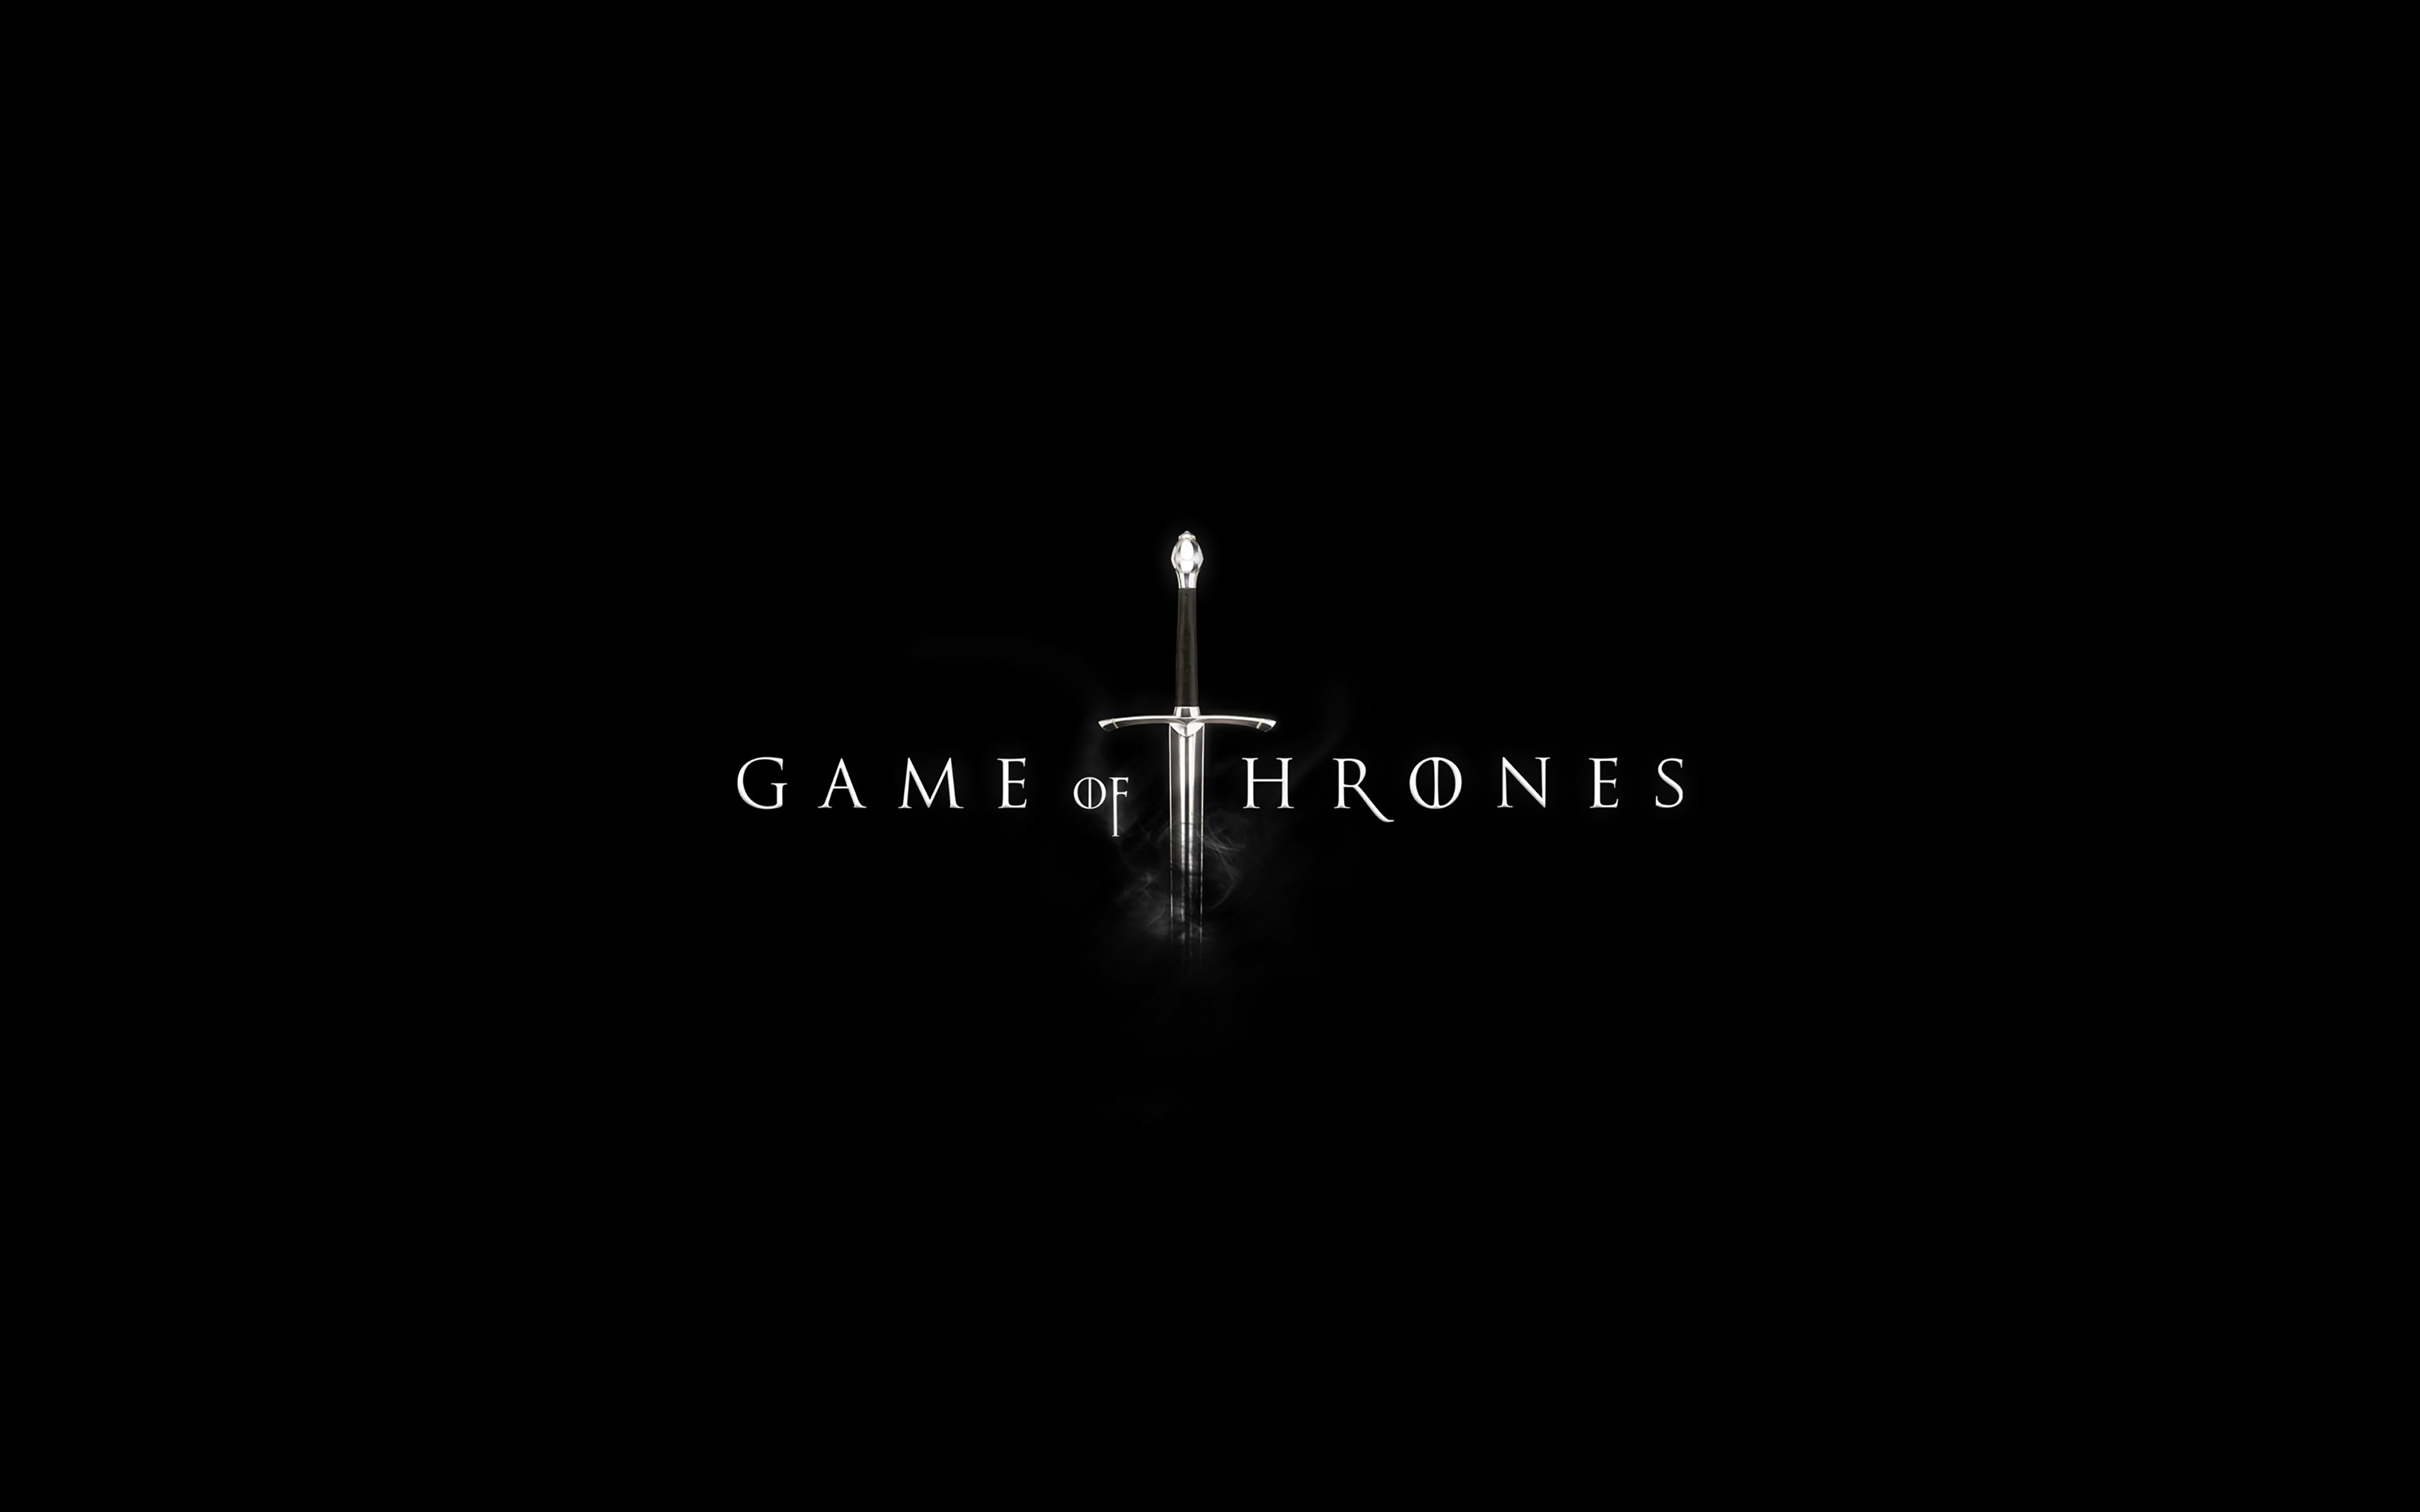 Bright Wallpapers For Iphone 6 Ab81 Wallpaper Game Of Thrones Dark Papers Co